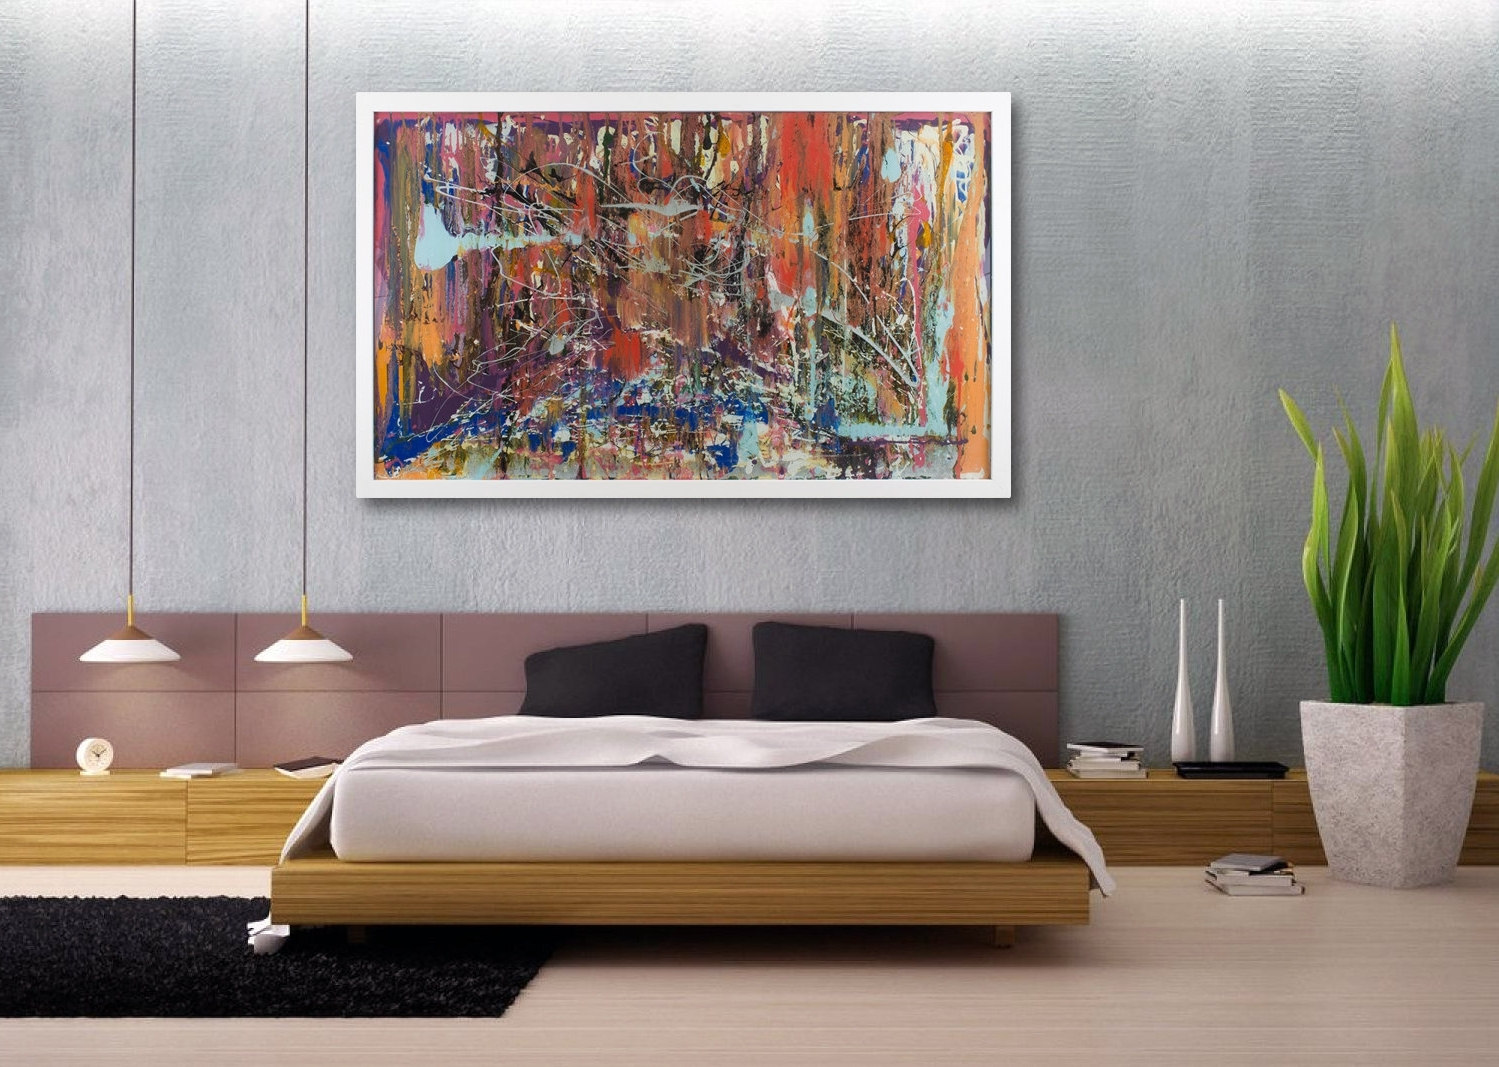 Glass Abstract Wall Art For Well Liked Innovative Way Modern Wall Decor Room — Joanne Russo Homesjoanne (View 4 of 15)